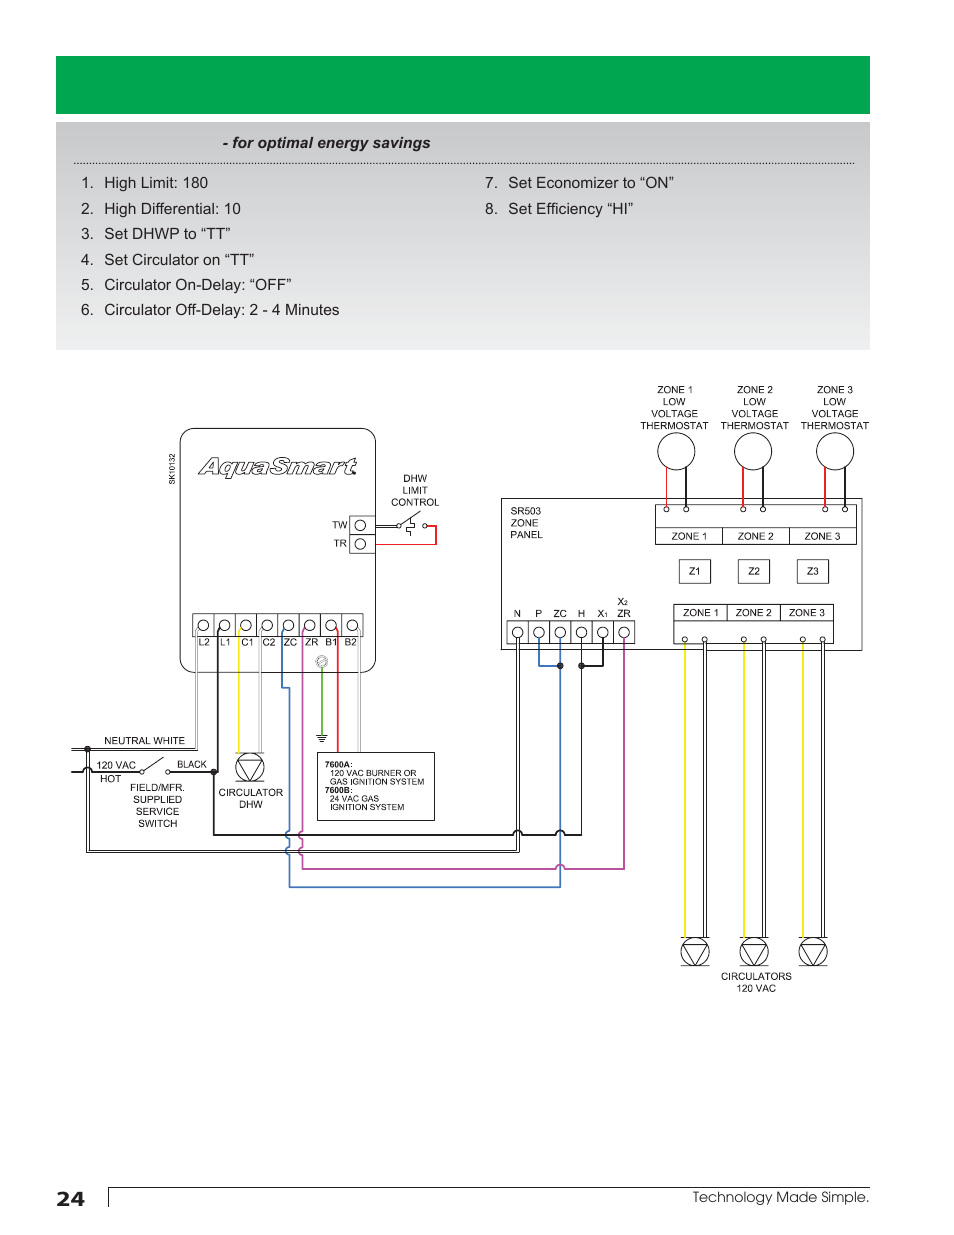 7600a Beckett Wiring Diagram - Wiring Diagram •